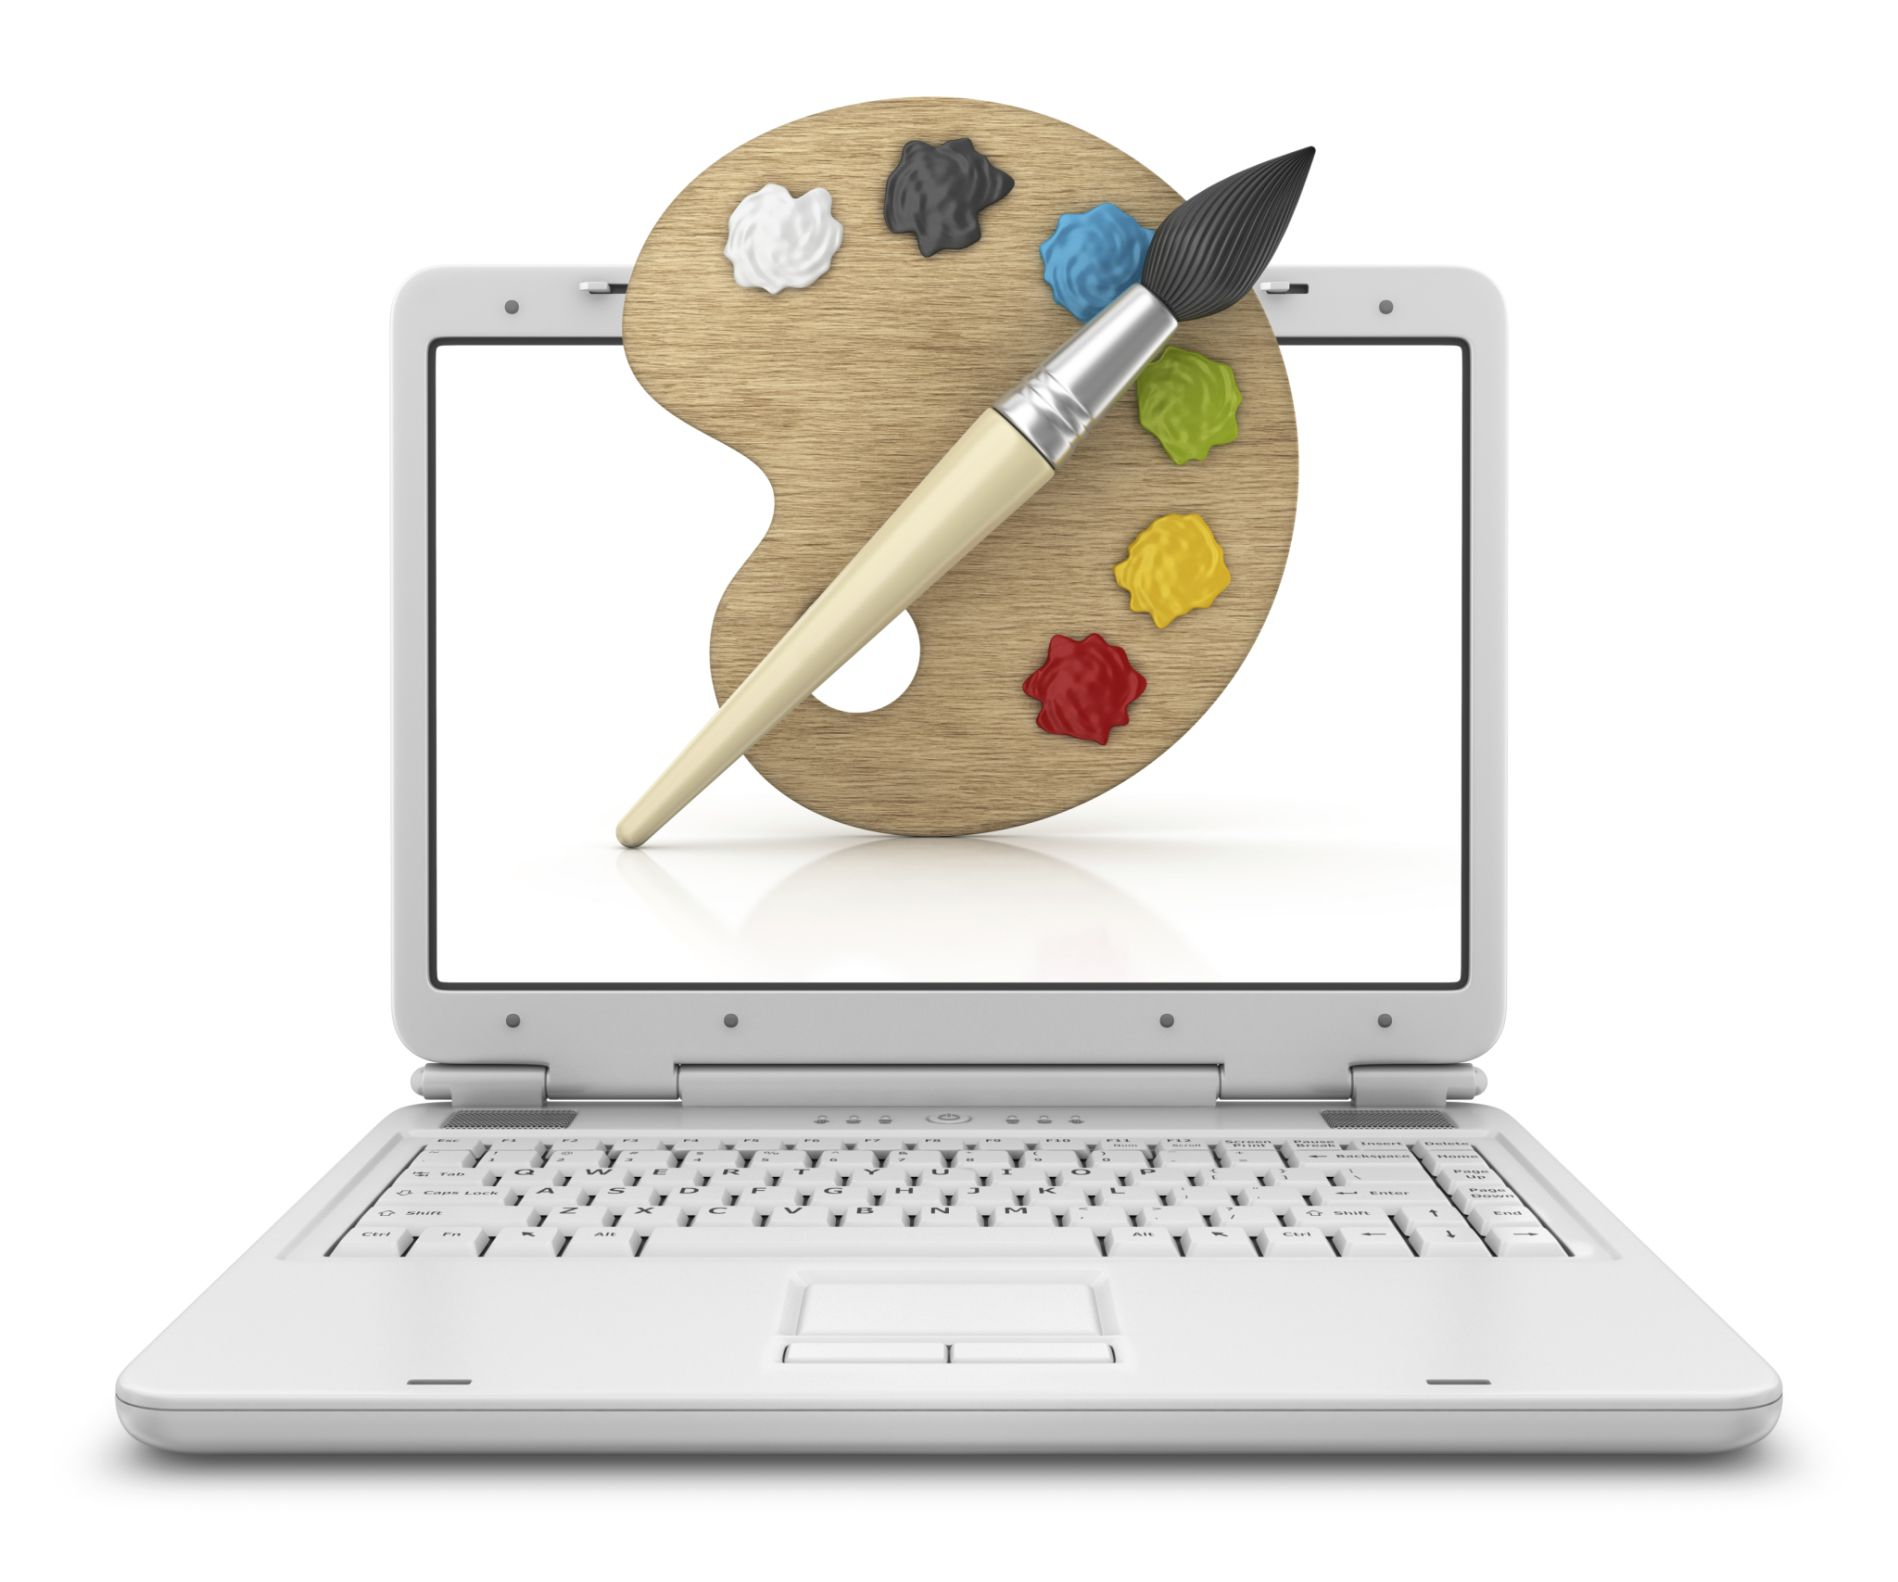 What Is Microsoft Paint 3D?